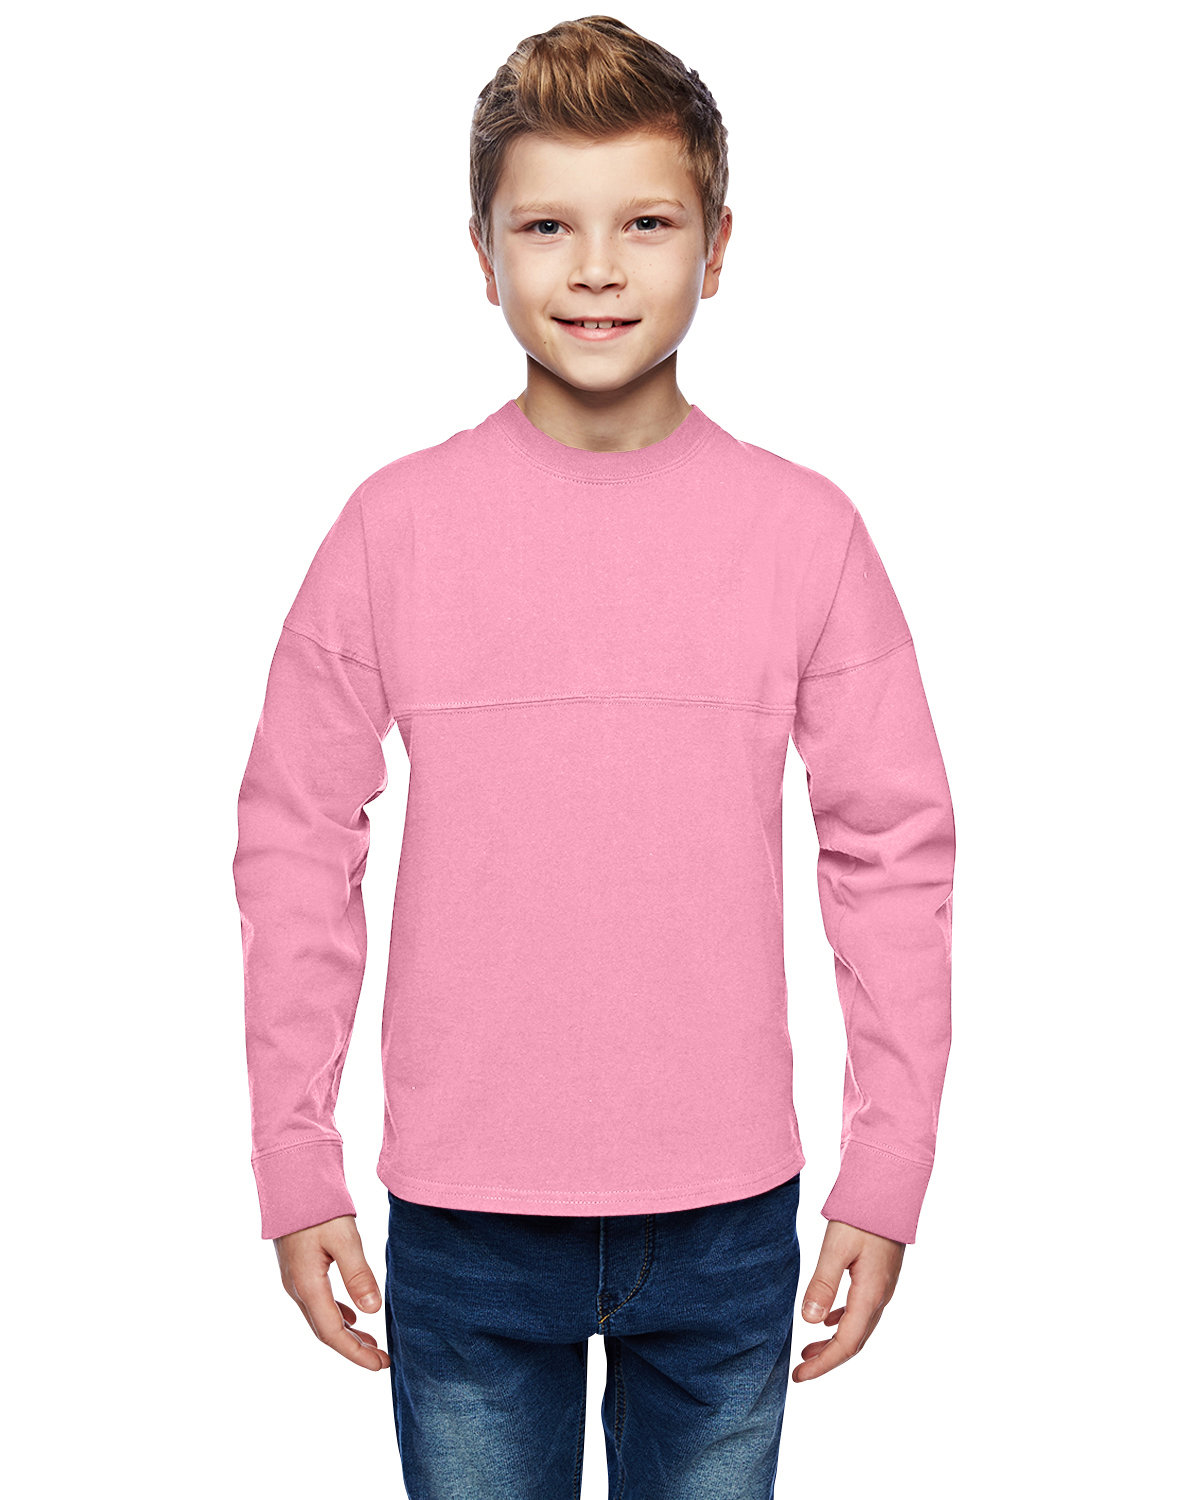 J America Youth Game Day Jersey PINK